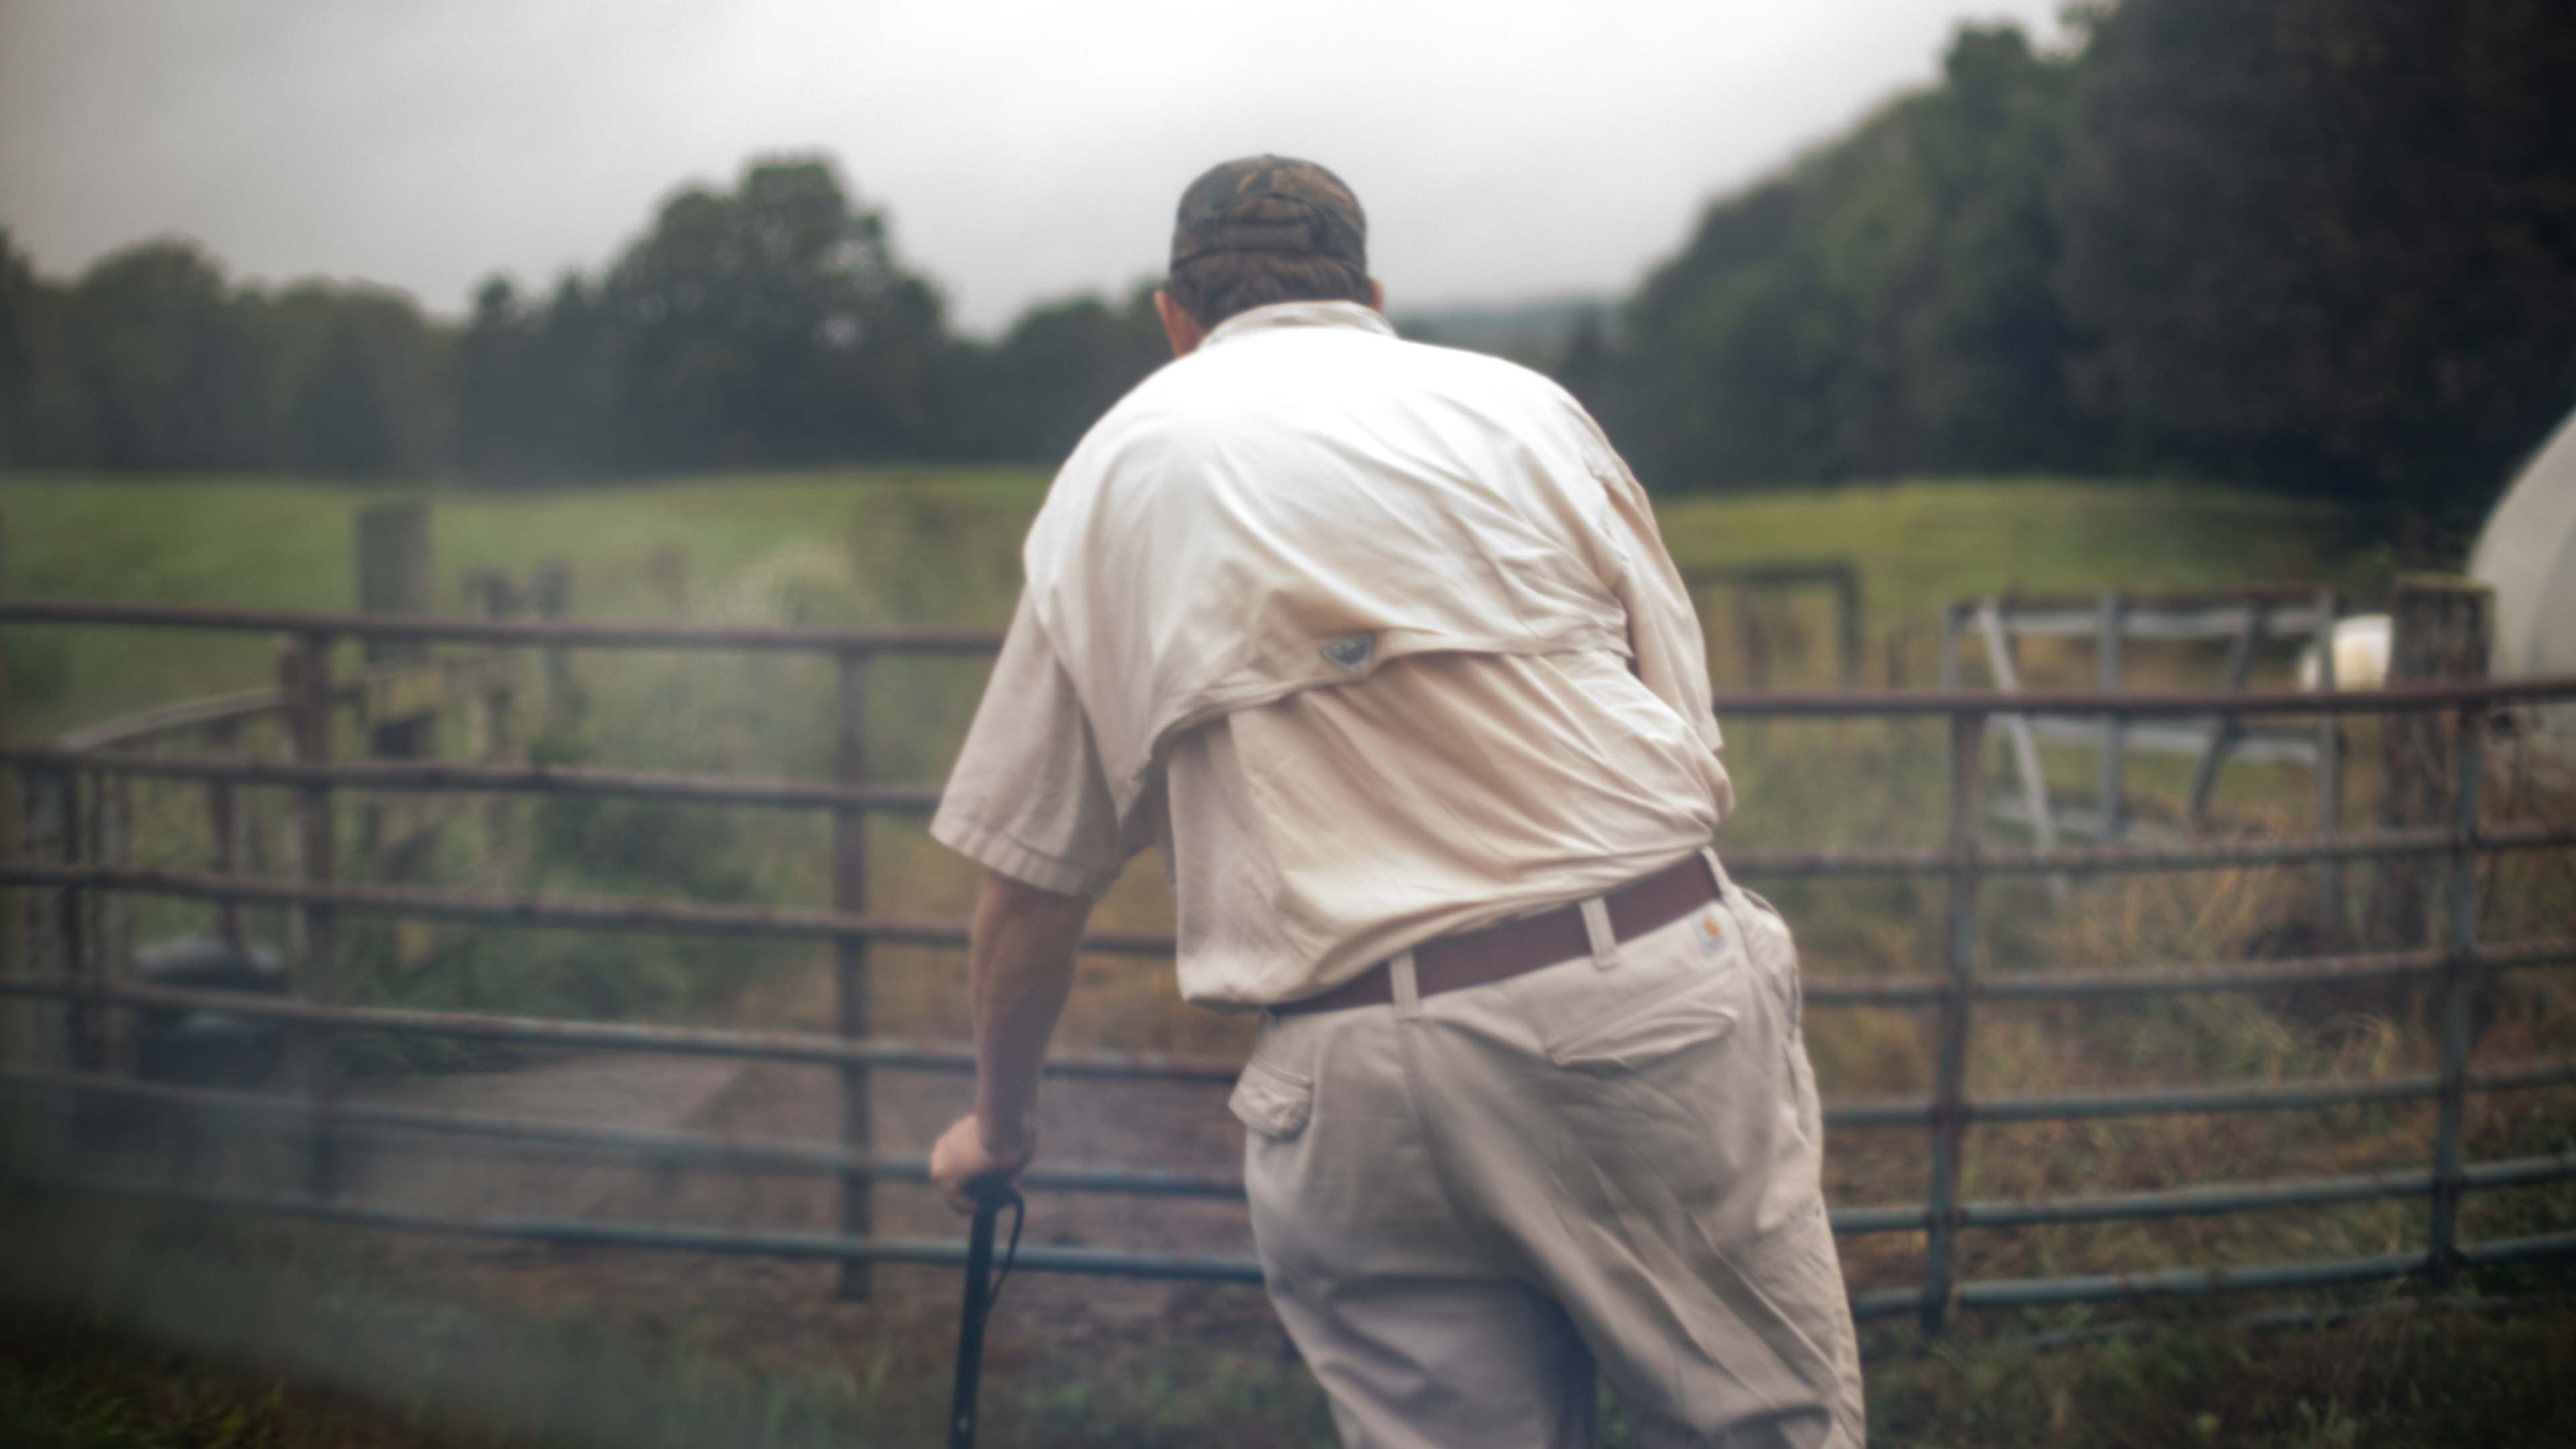 An old farmer uses his cane to walk around his farm.